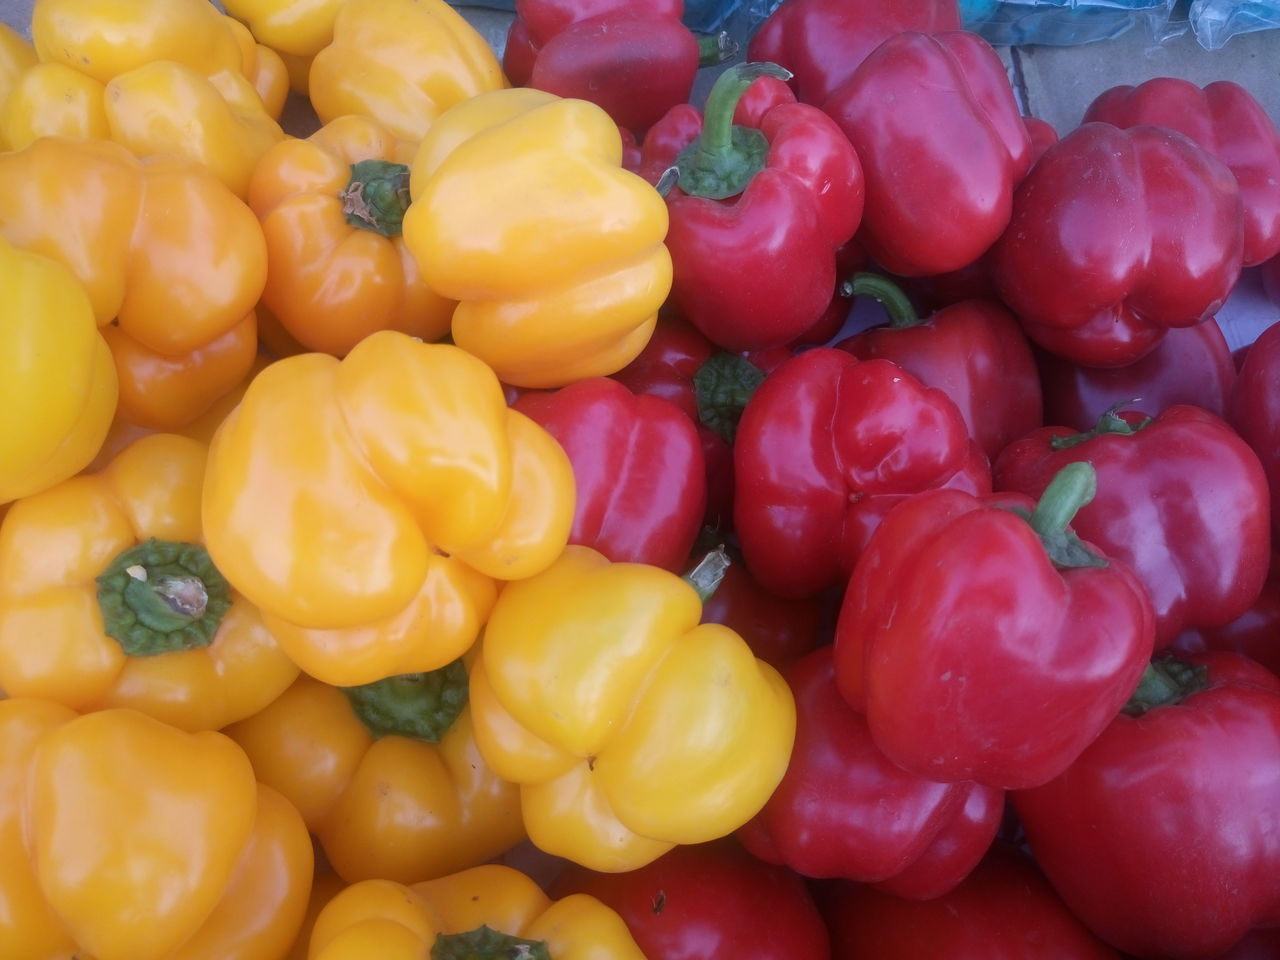 Backgrounds Bell Pepper Close-up Day Food Food And Drink Freshness Full Frame Healthy Eating No People Outdoors Red Red Bell Pepper Vegetable Yellow Yellow Bell Pepper